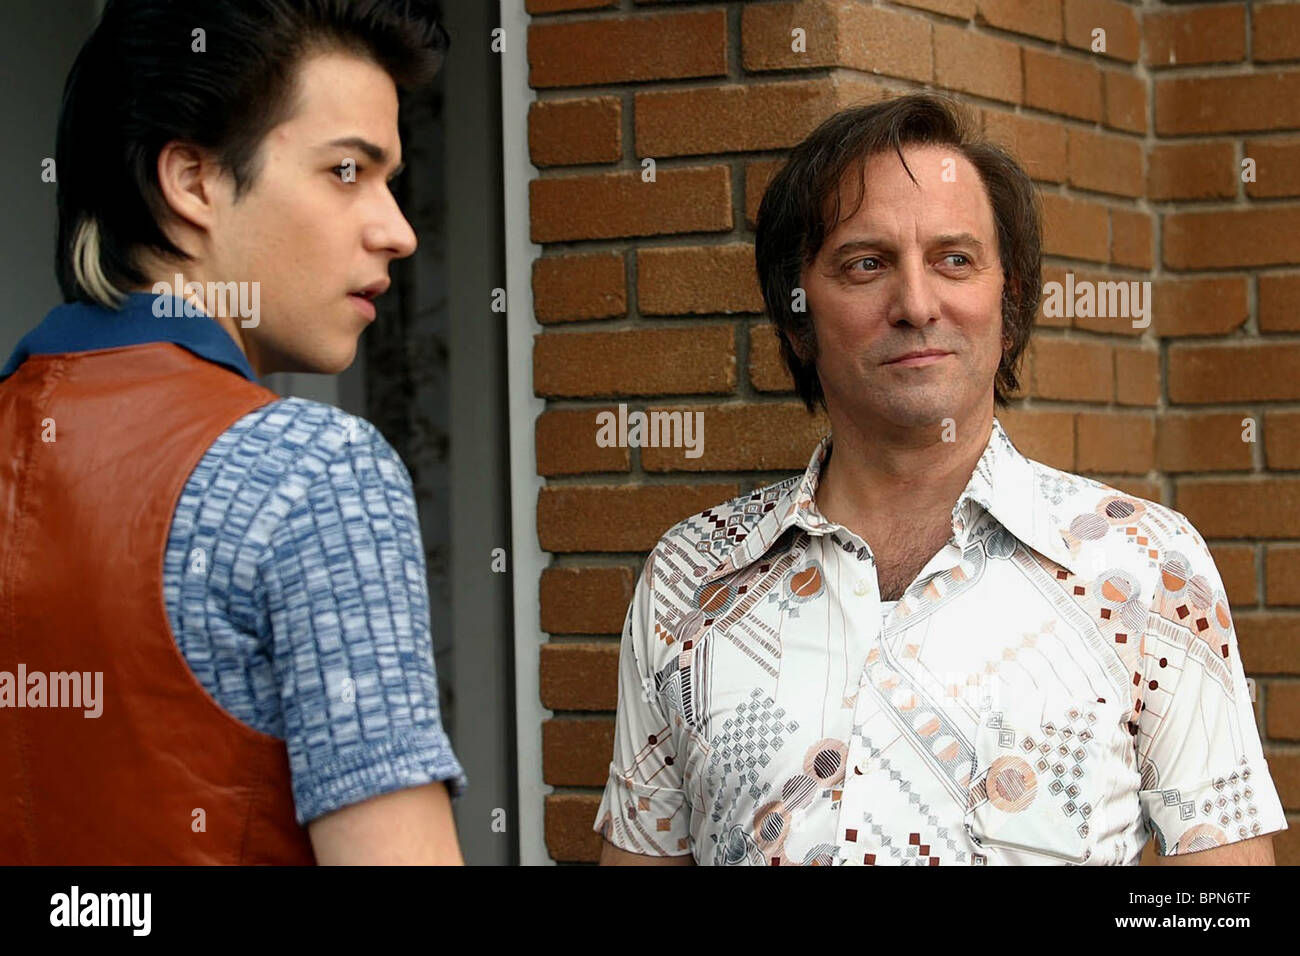 MARC-ANDRE GRONDIN & MICHEL COTE C.R.A.Z.Y.; CRAZY (2005) - Stock Image